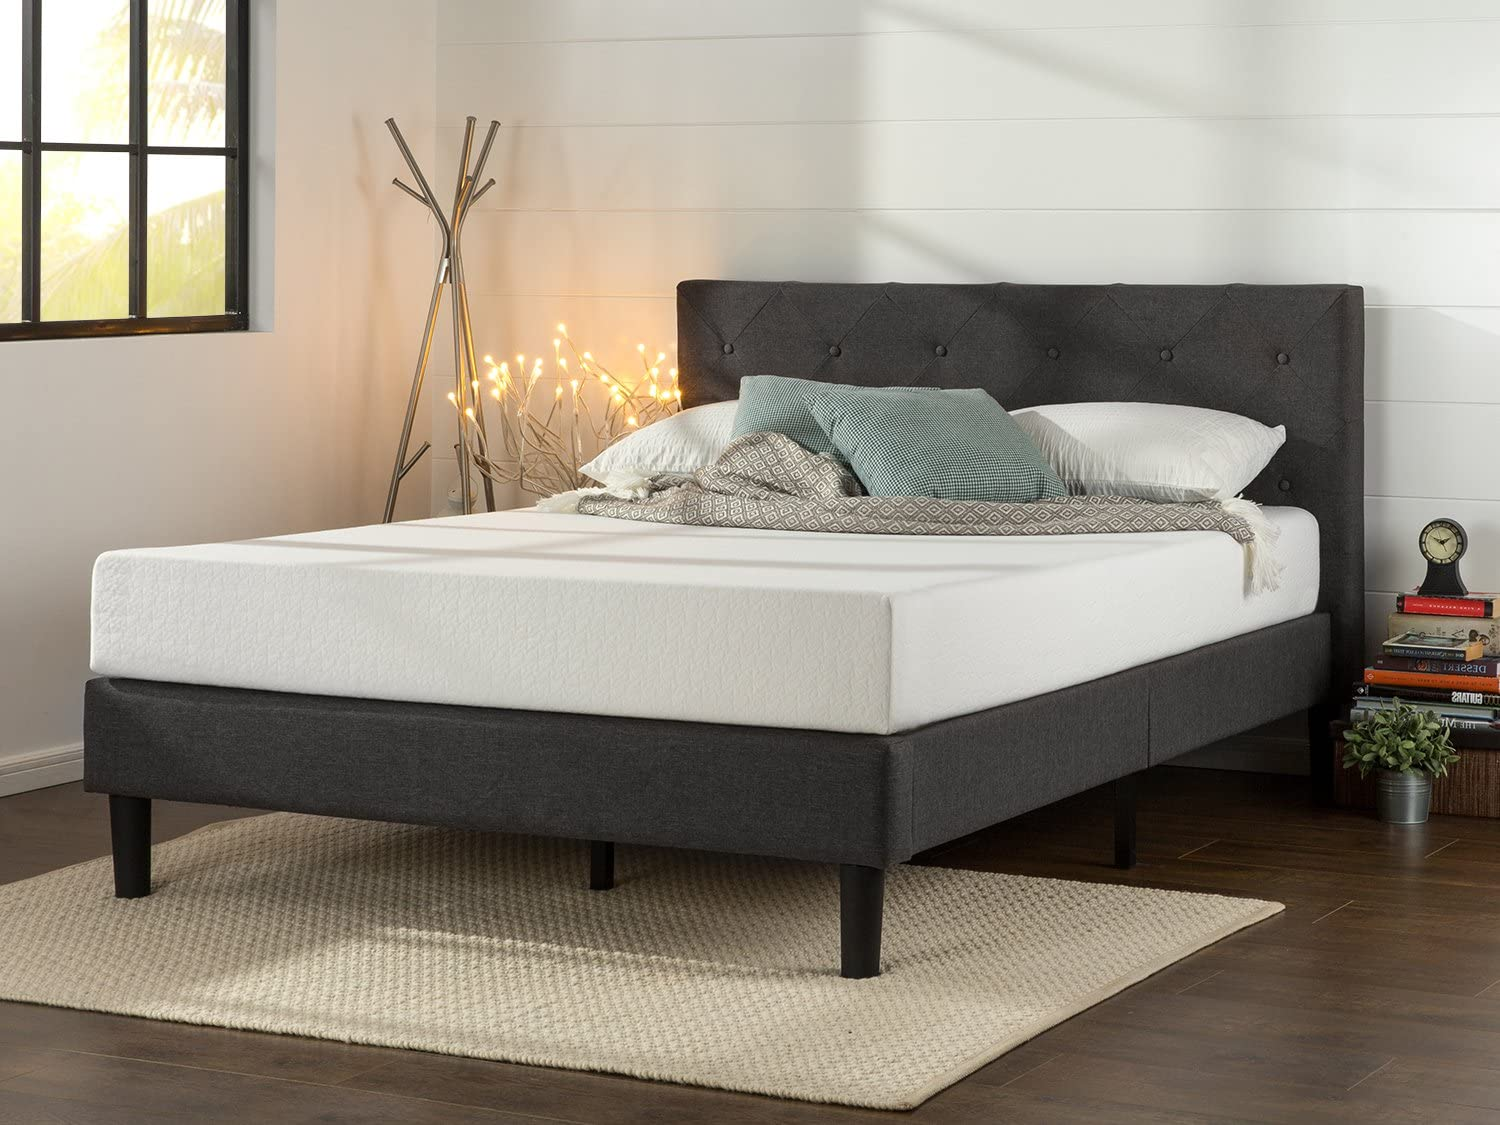 Top 10 Best Full Size Beds